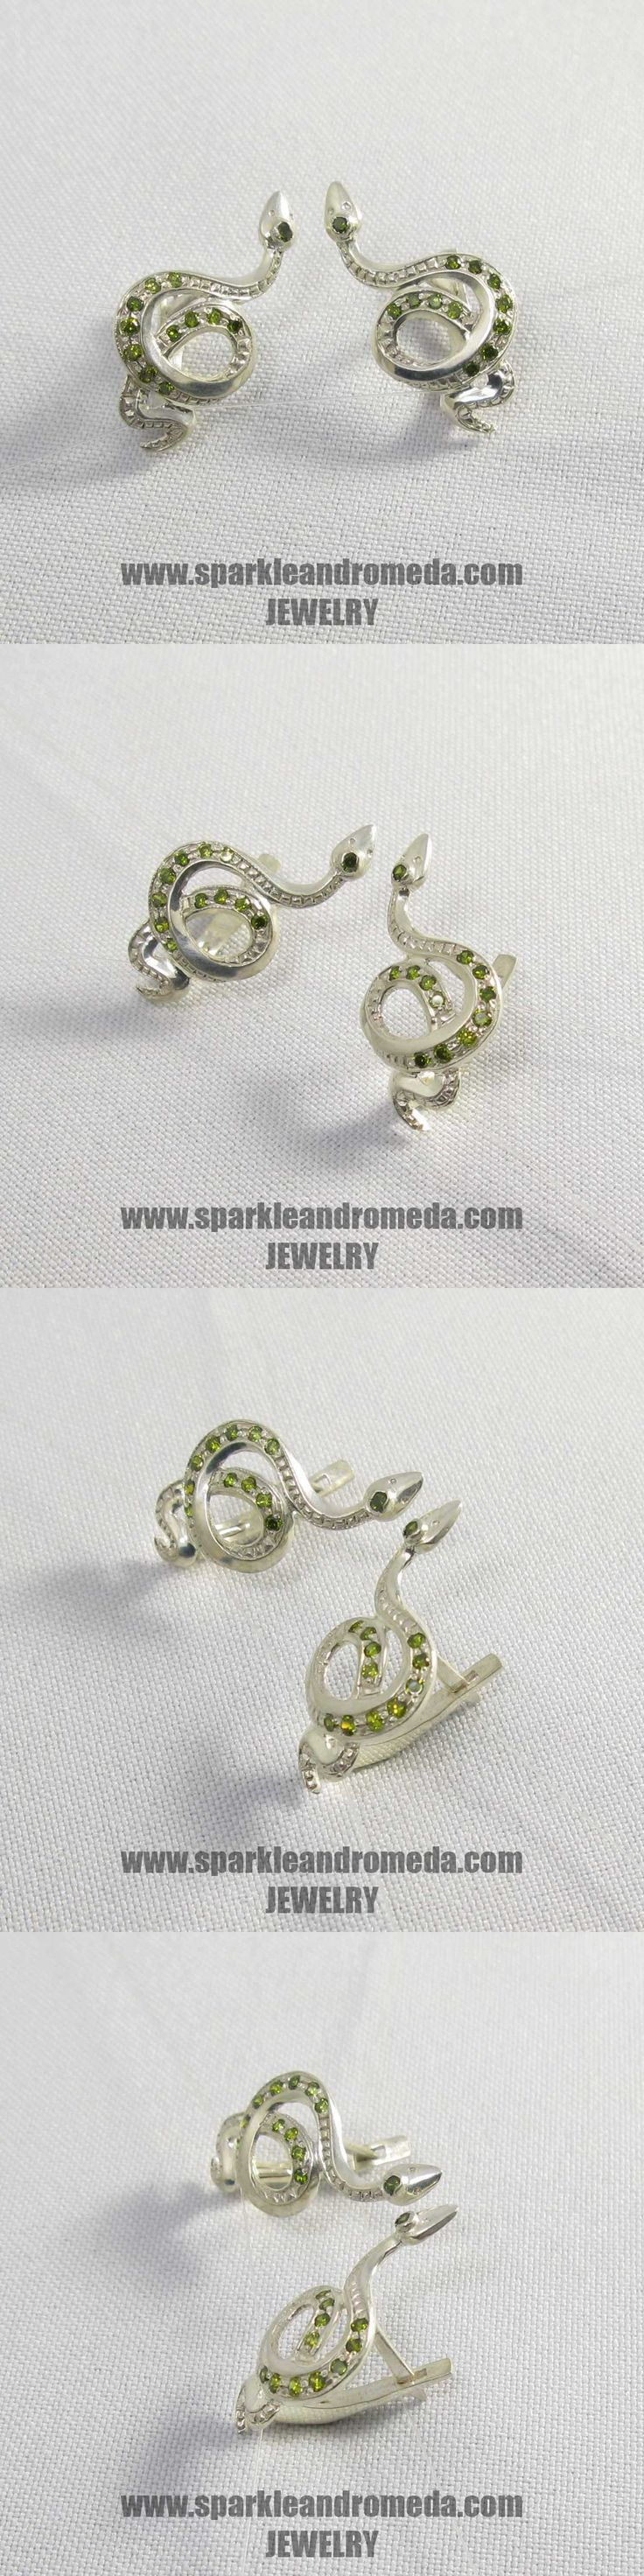 Sterling 925 silver earrings with 2 round 1,75 mm 6 round 1,5 mm 8 round 1,25 mm green peridot color cubic zirconia gemstones.